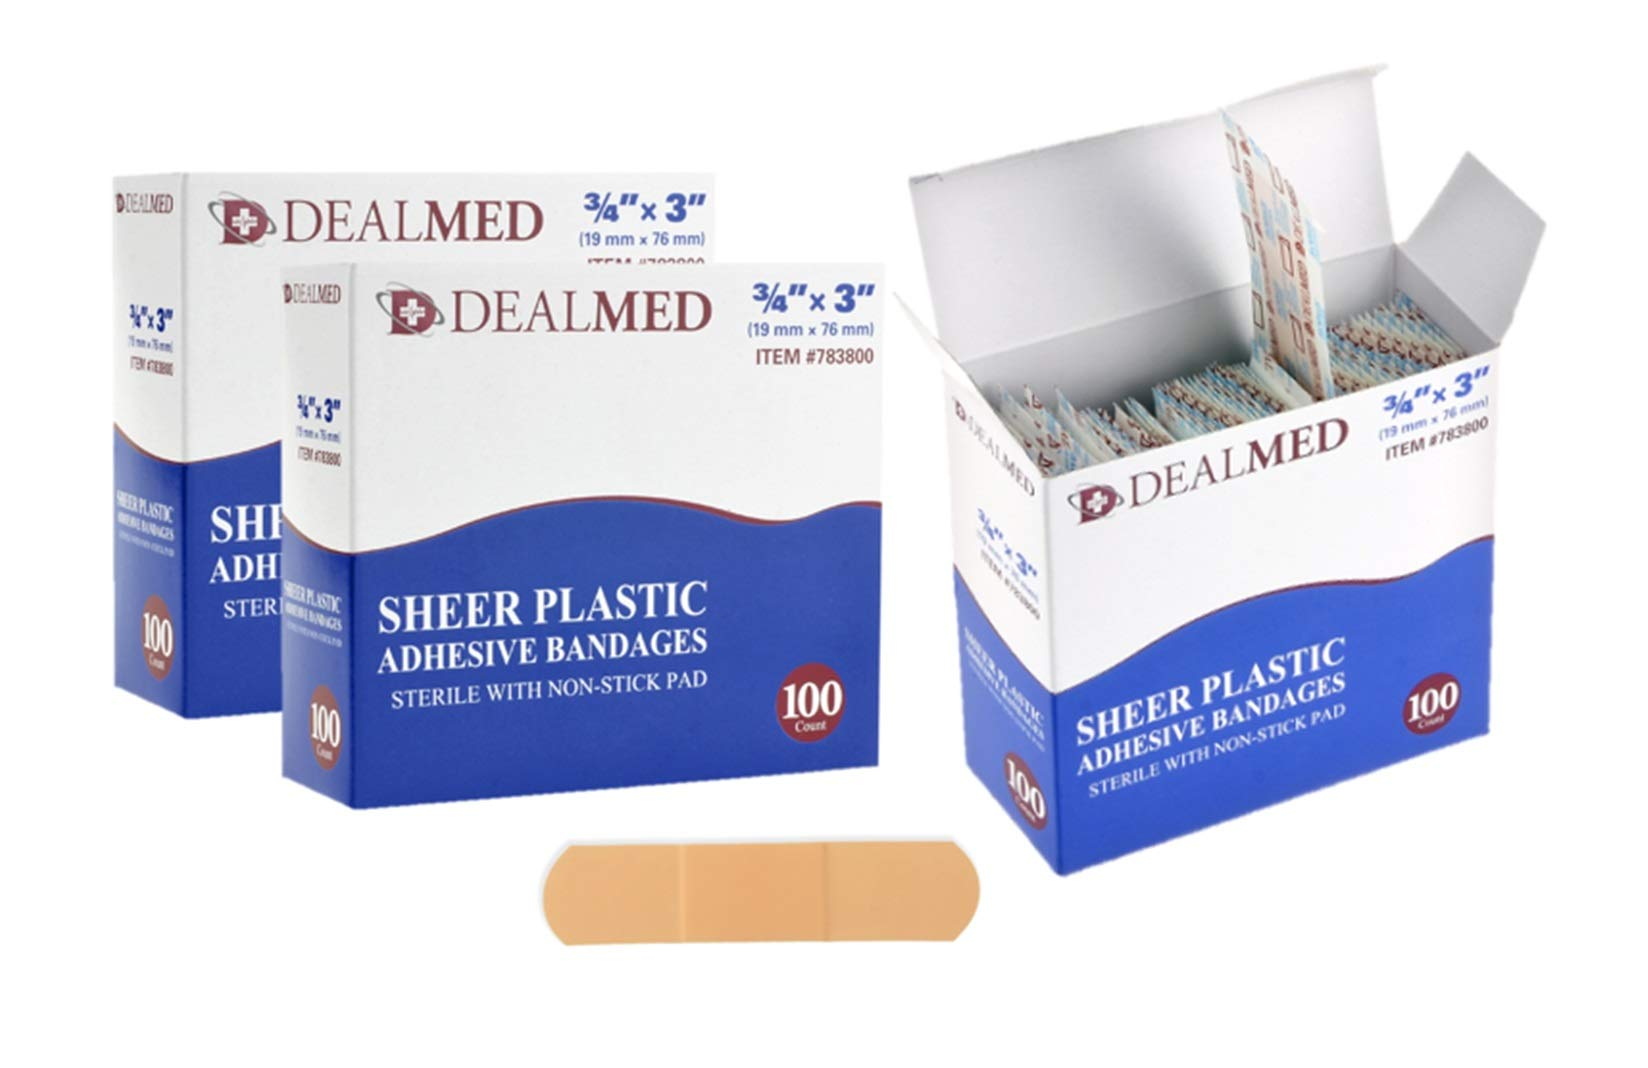 """Dealmed Brand Flexible Sheer Plastic Adhesive Bandages, Sterile Non-Stick Pad for Minor Wound Care, 1"""" x 3"""", 300 Count"""